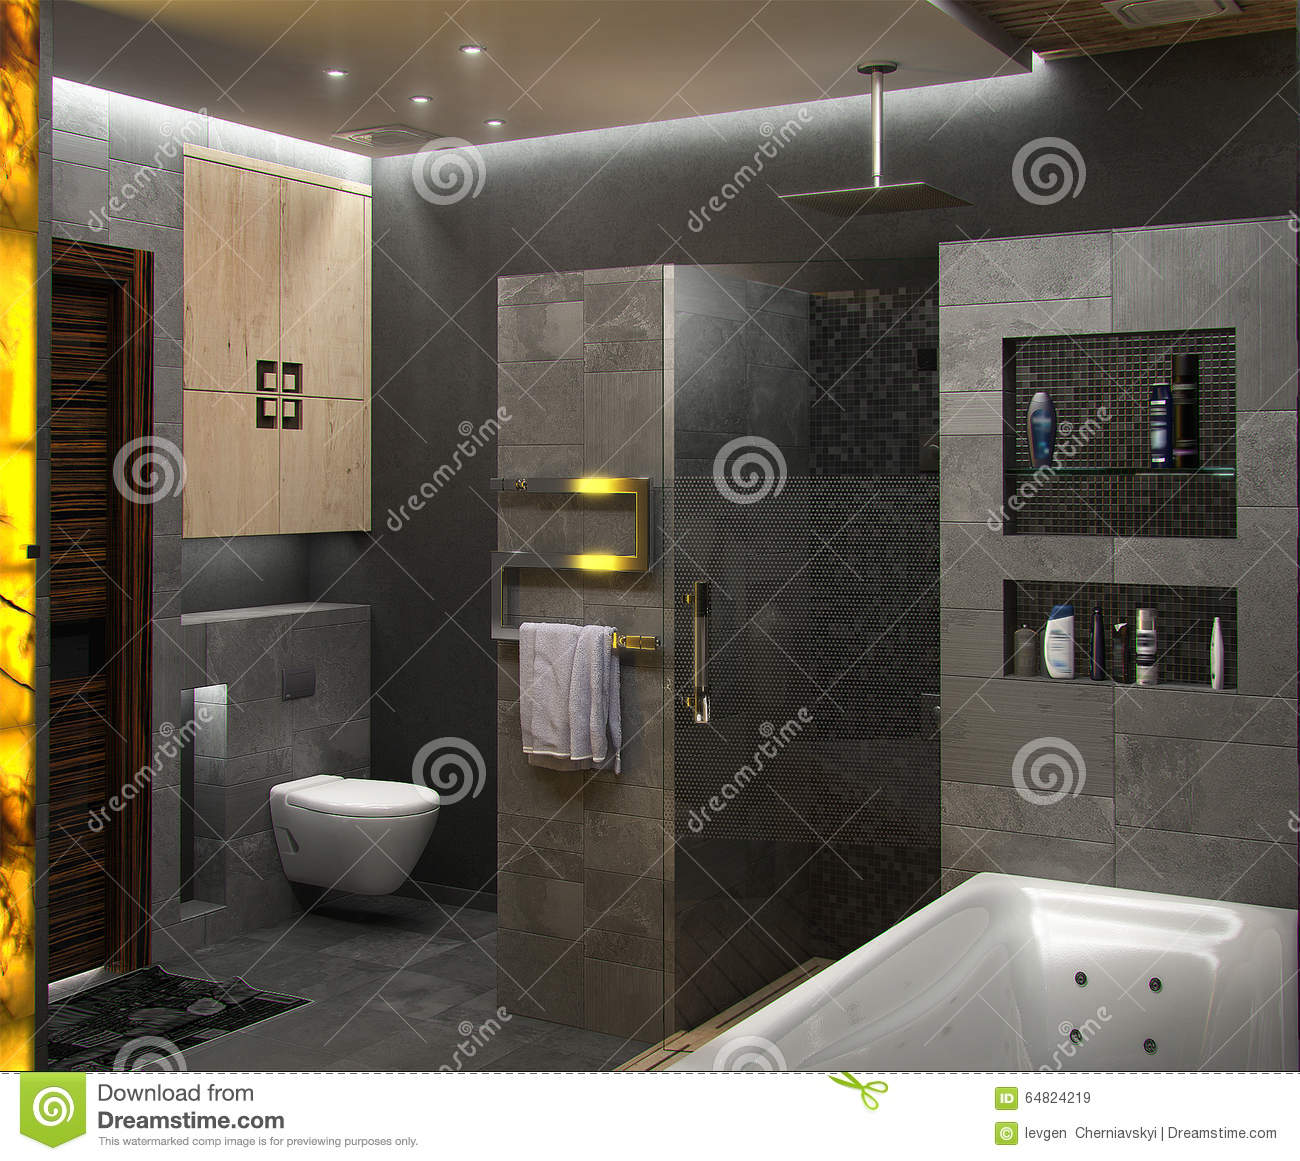 Bathroom minimalist style interior design render 3d stock image 59717101 - Minimalist style interior design ...